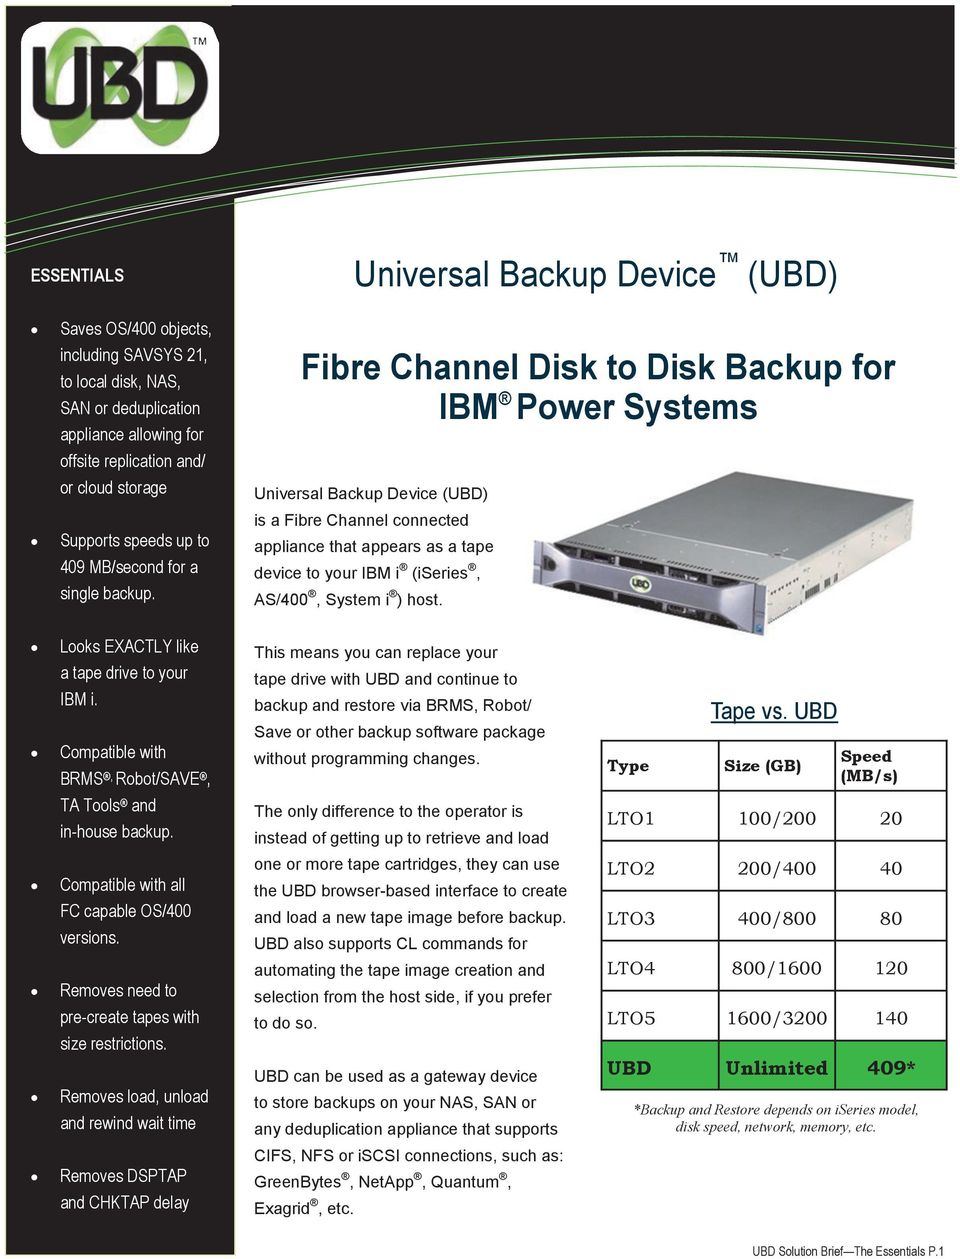 Fibre Channel Disk to Disk Backup for IBM Power Systems Universal Backup Device (UBD) is a Fibre Channel connected appliance that appears as a tape device to your IBM i (iseries, AS/400, System i )